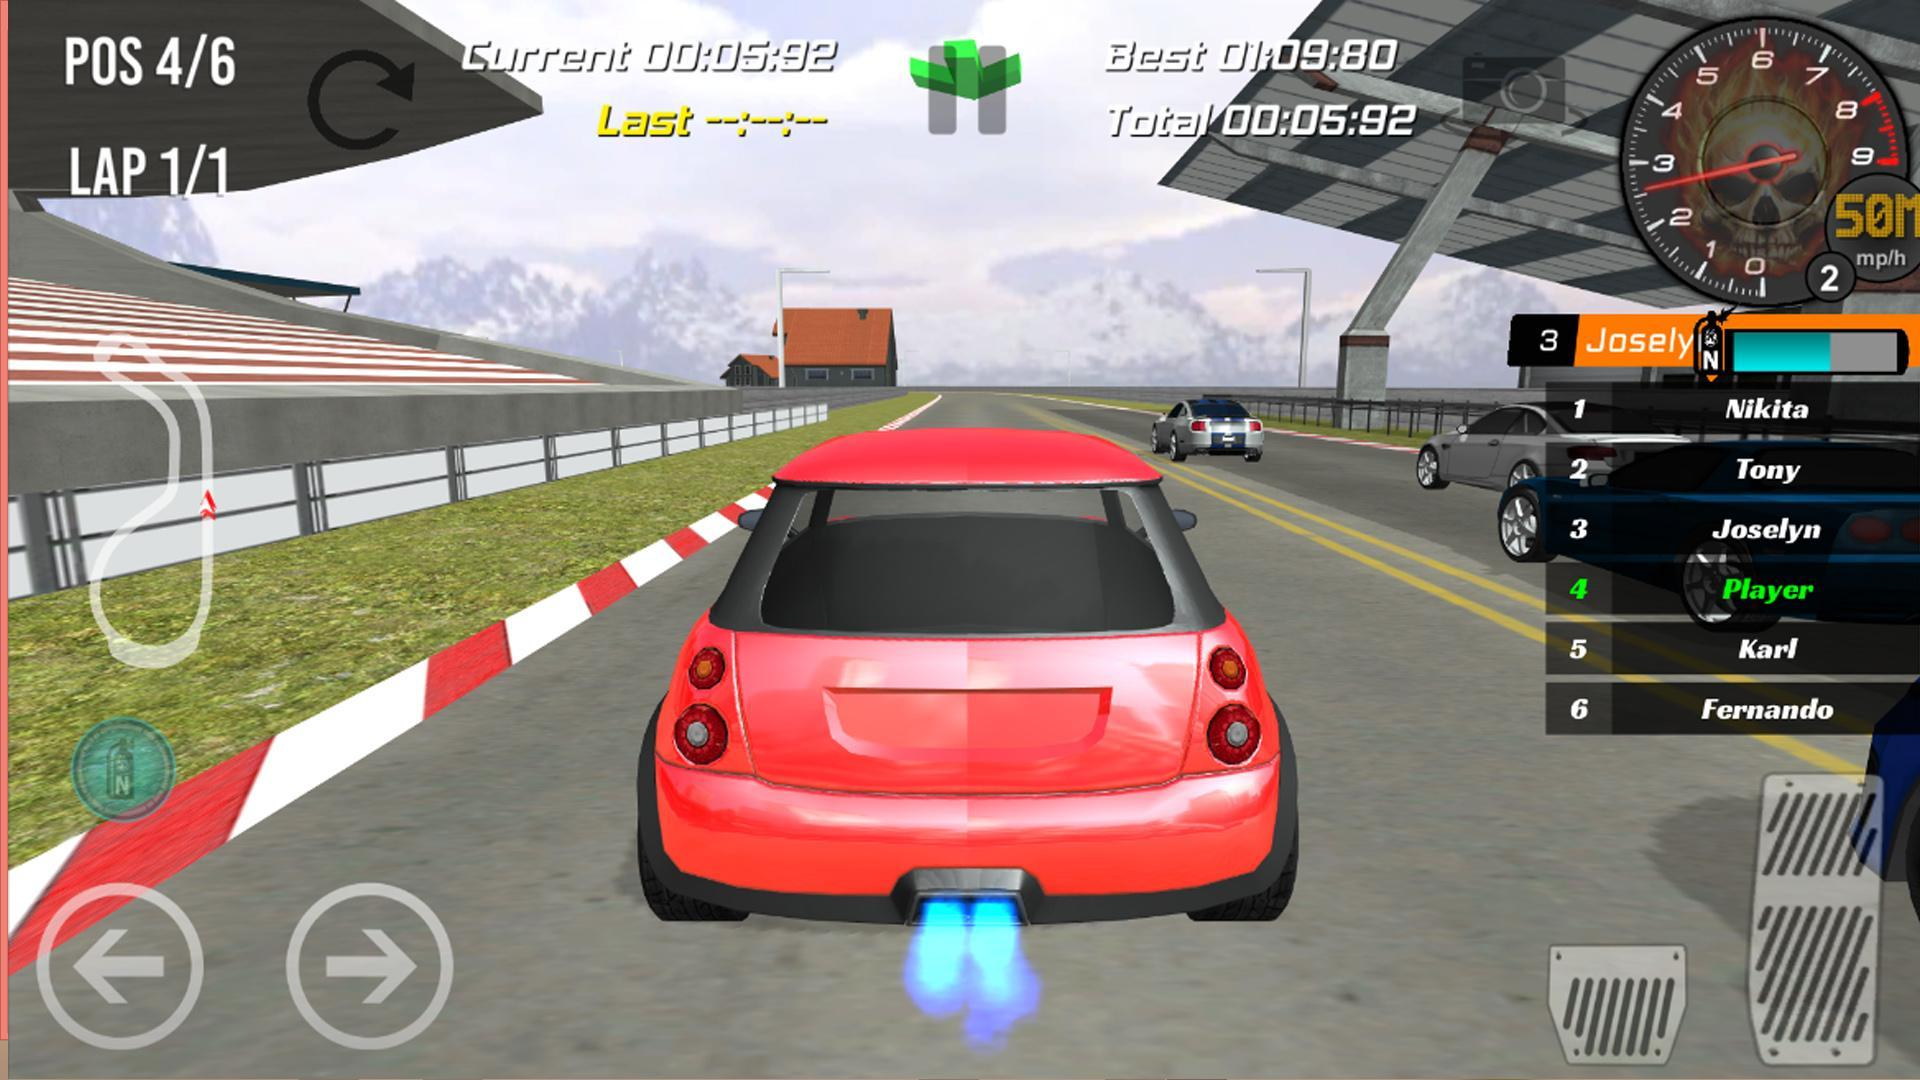 Real Mini Cooper One Racing Game 2018 for Android - APK Download